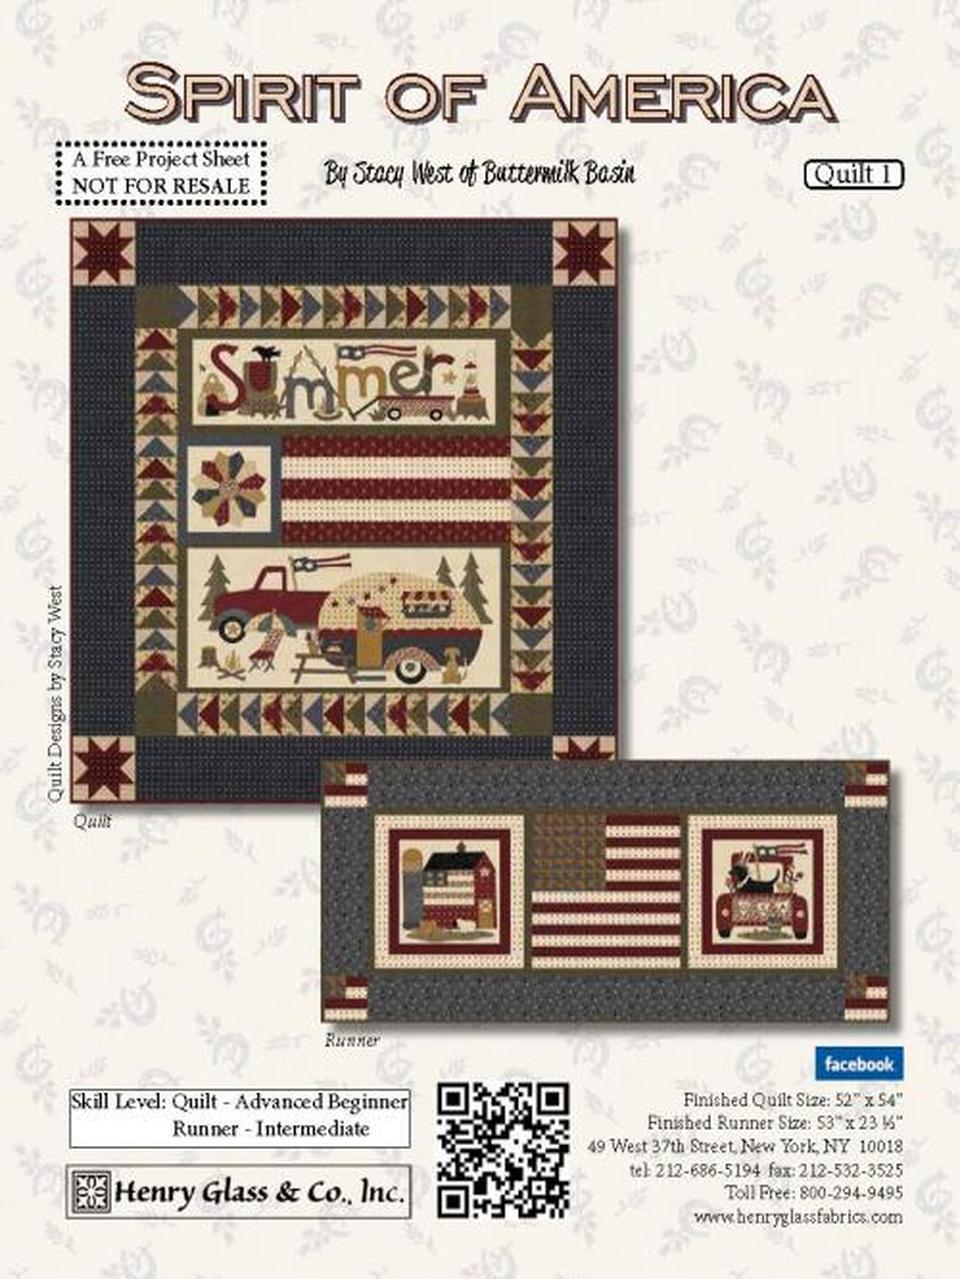 Spirit of America Panel Quilt and Runner